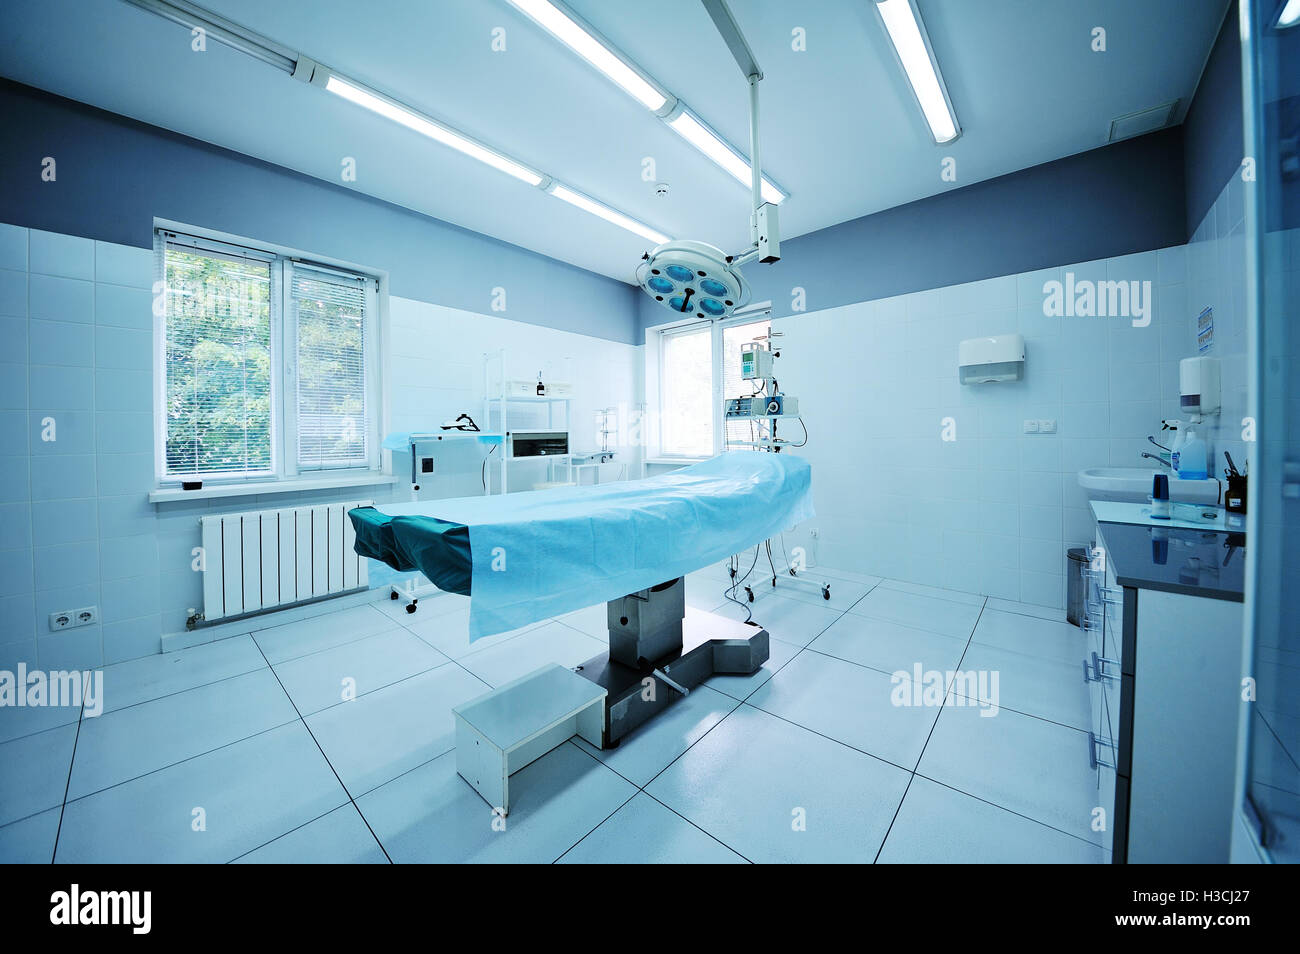 beautiful interior of a surgical operating - Stock Image